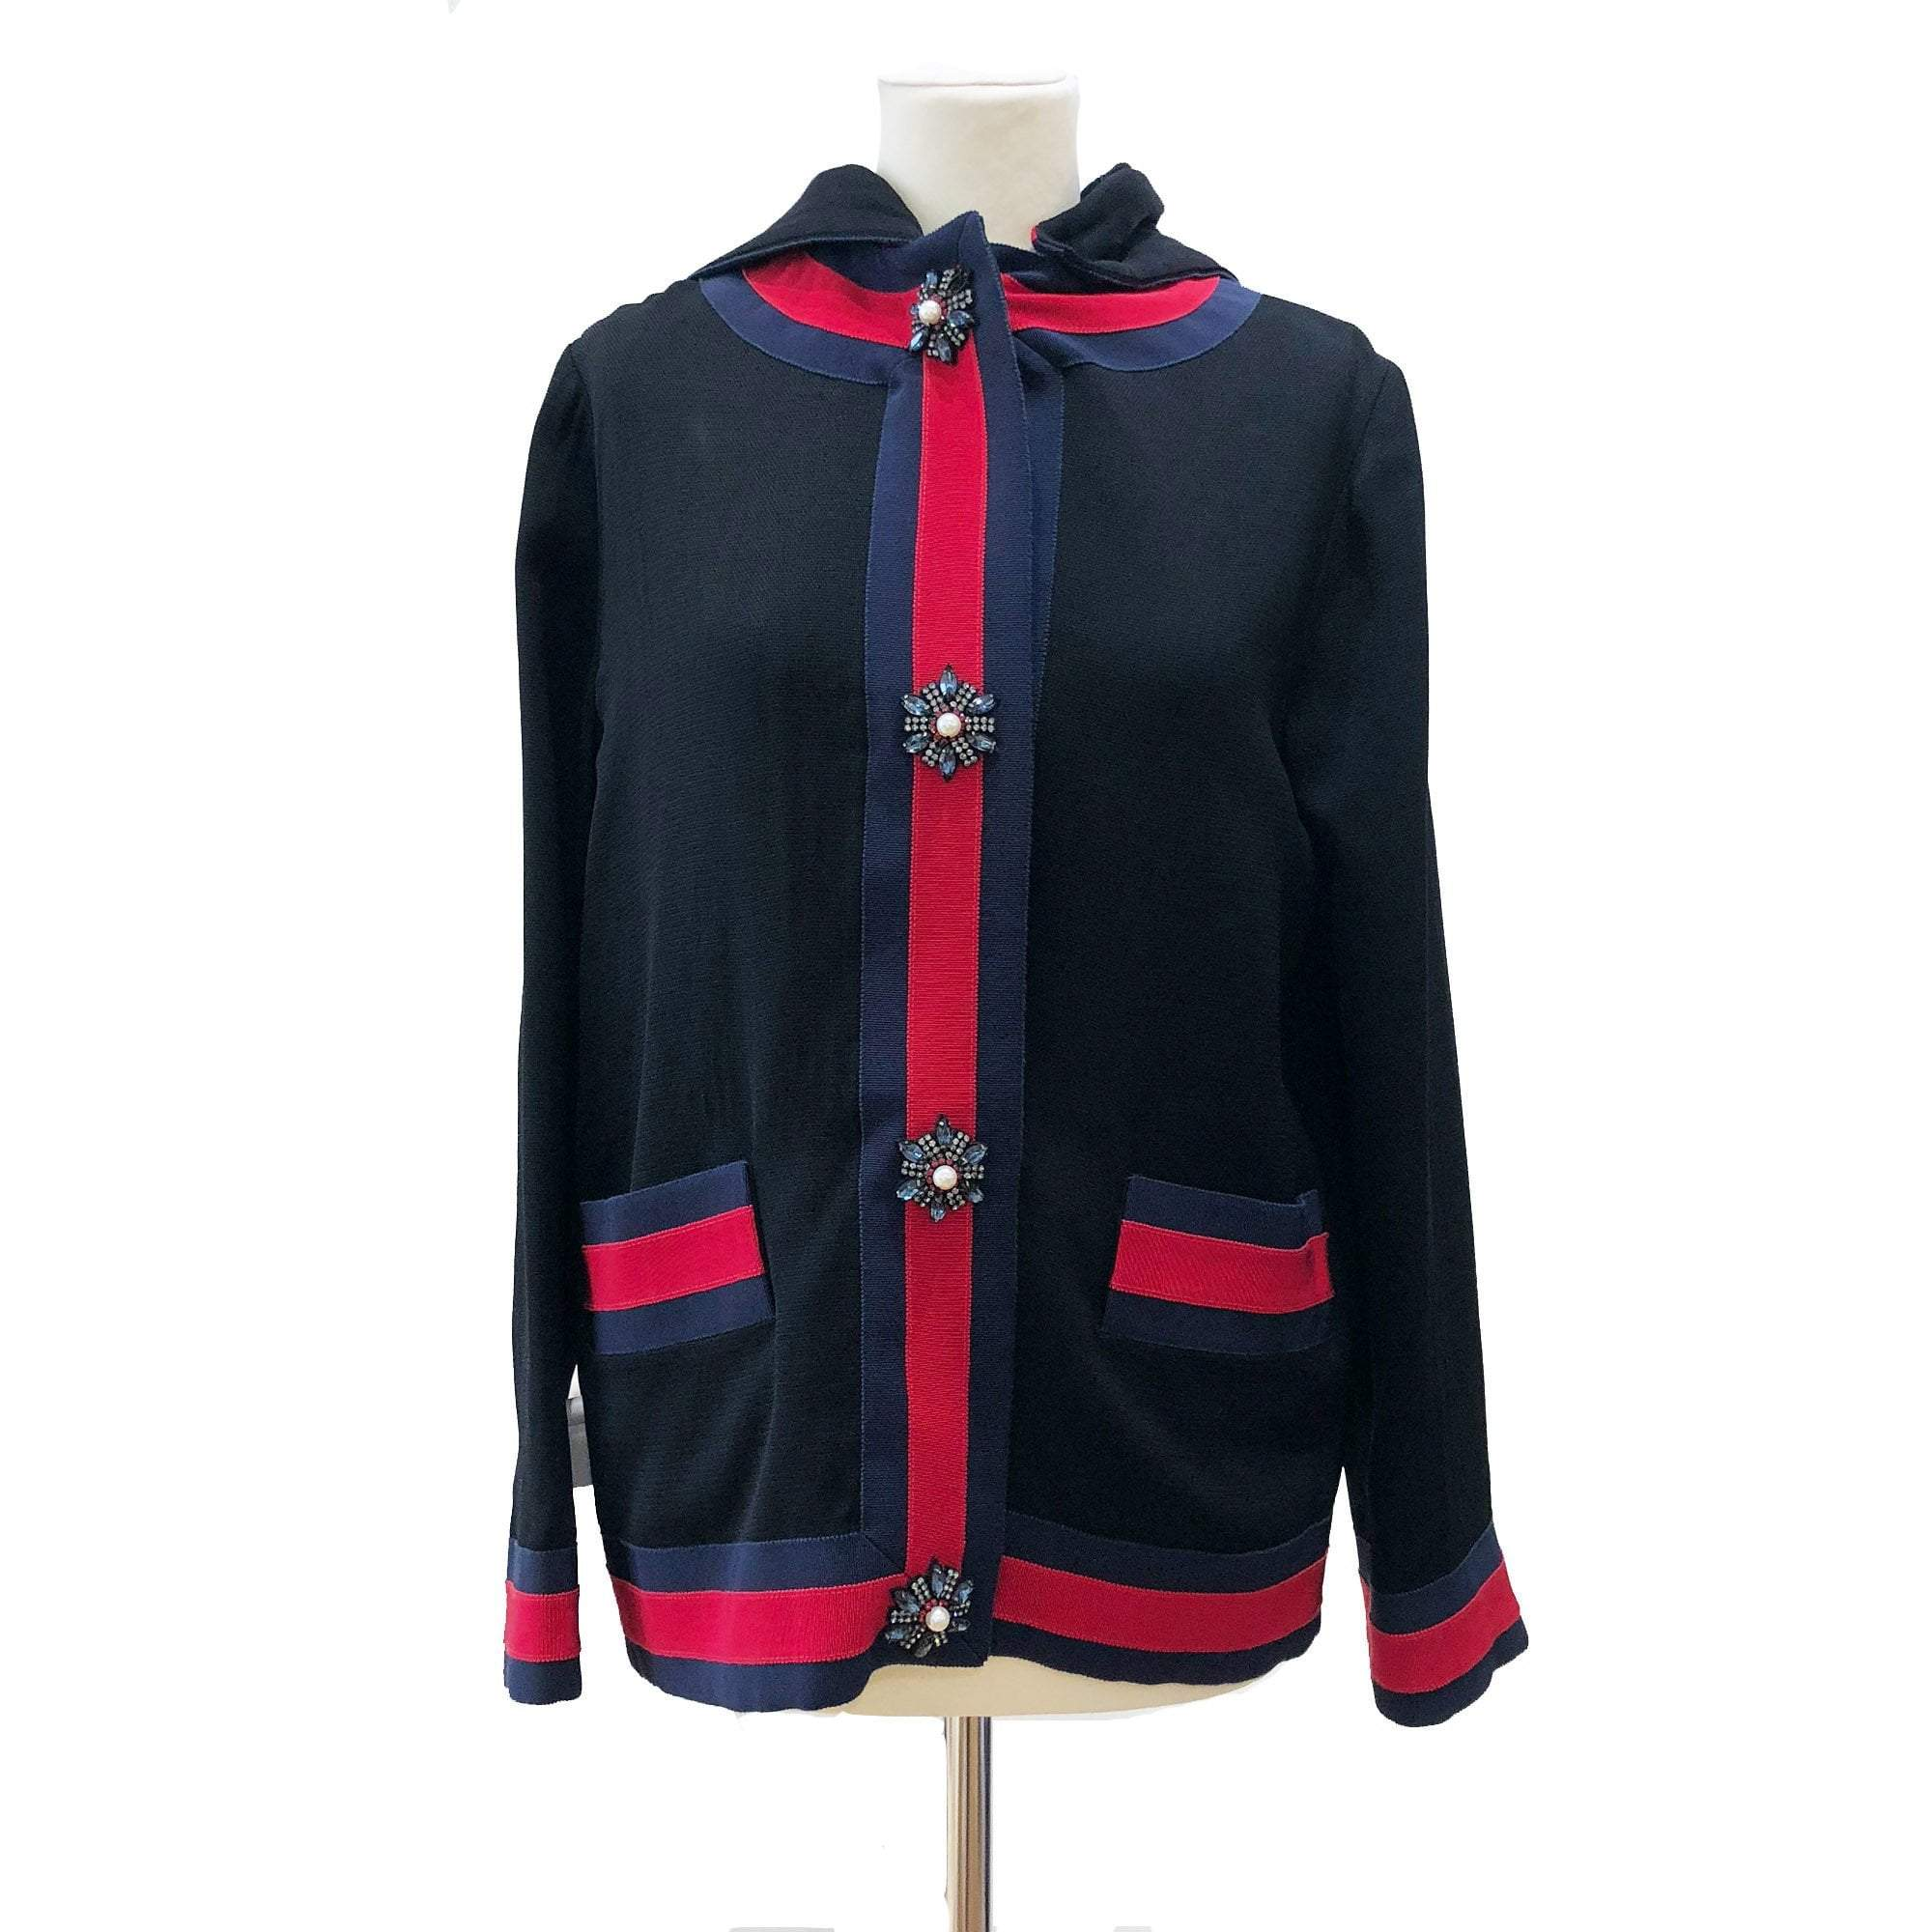 Gucci detachable Loved hood jacket